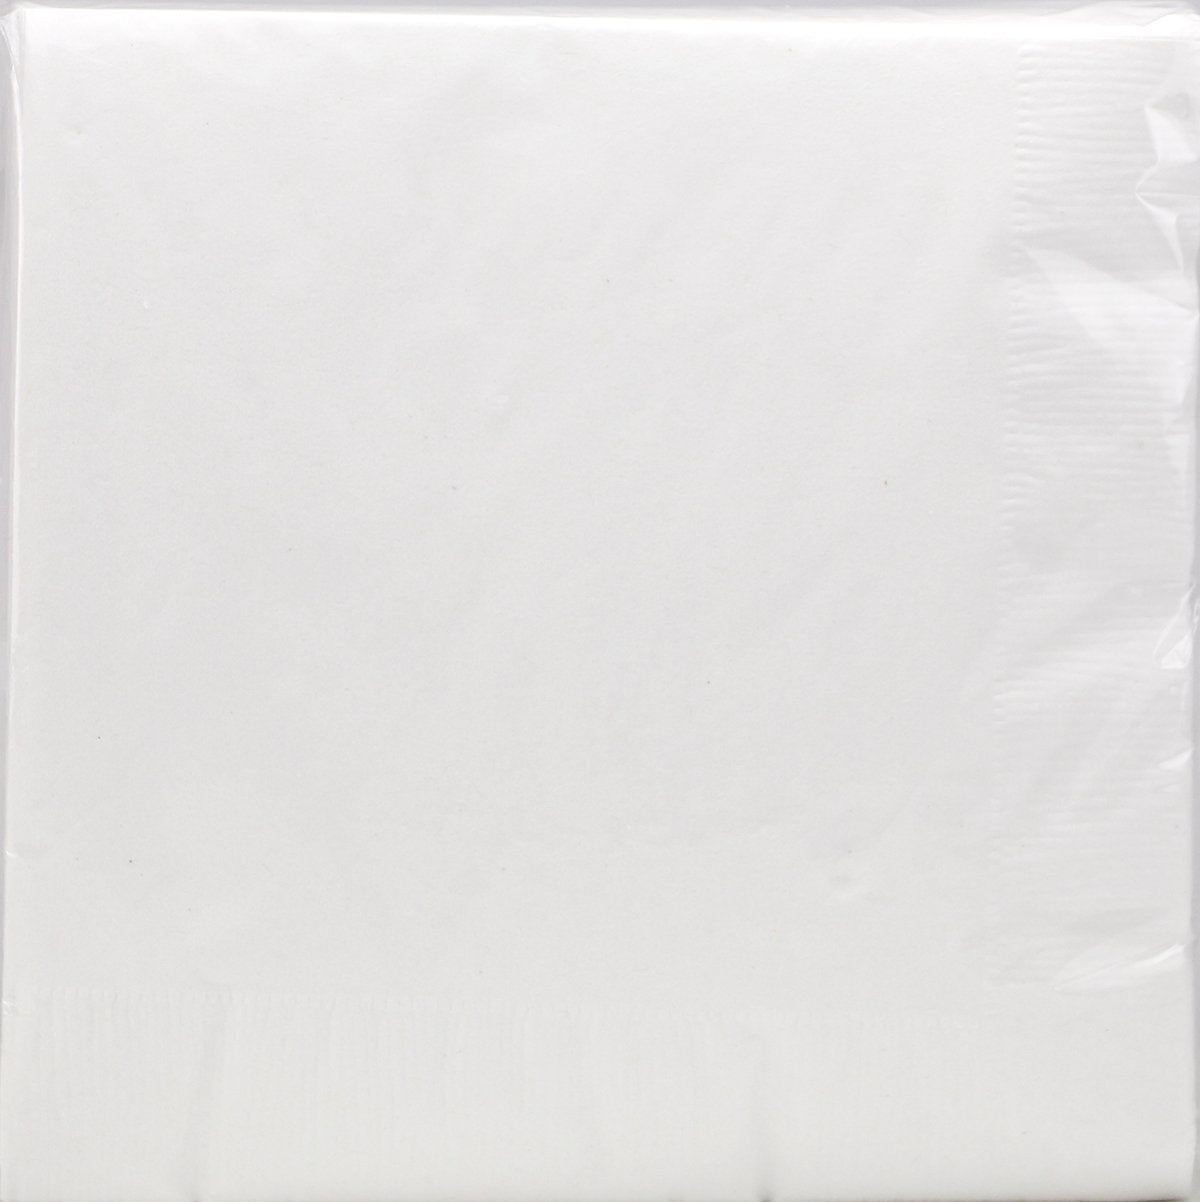 12.87inchx12.87inch Luncheon Napkin / White